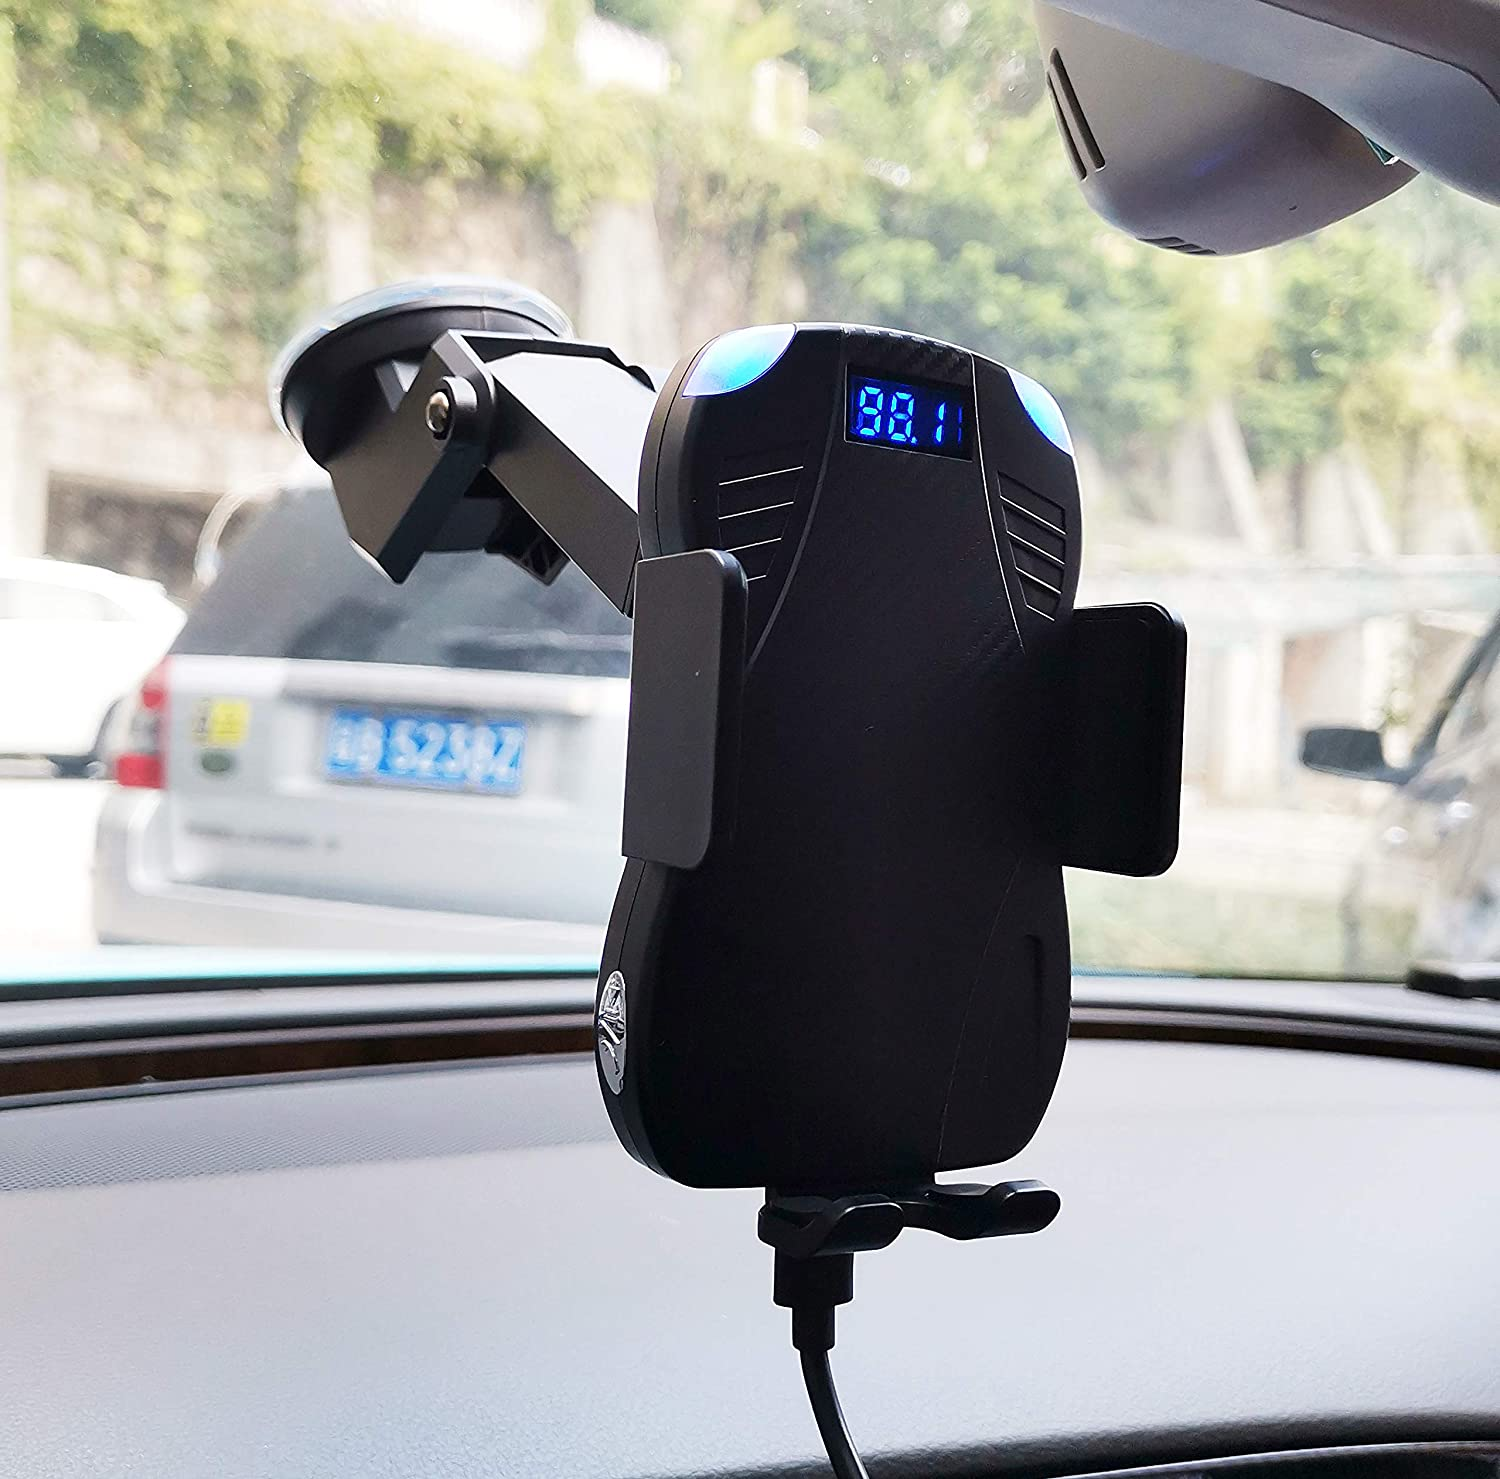 Samsung Galaxy S10//S10+//S9//S9+//S8//S8+ ENSFOUY 2019New Car Wireless Phone Charger Bluetooth FM Transmitter 10W Qi Fast Charging Mount Auto-Clamping Stand for iPhone 11//11 Pro//11 Pro MAX XS//XR//X//8//8+